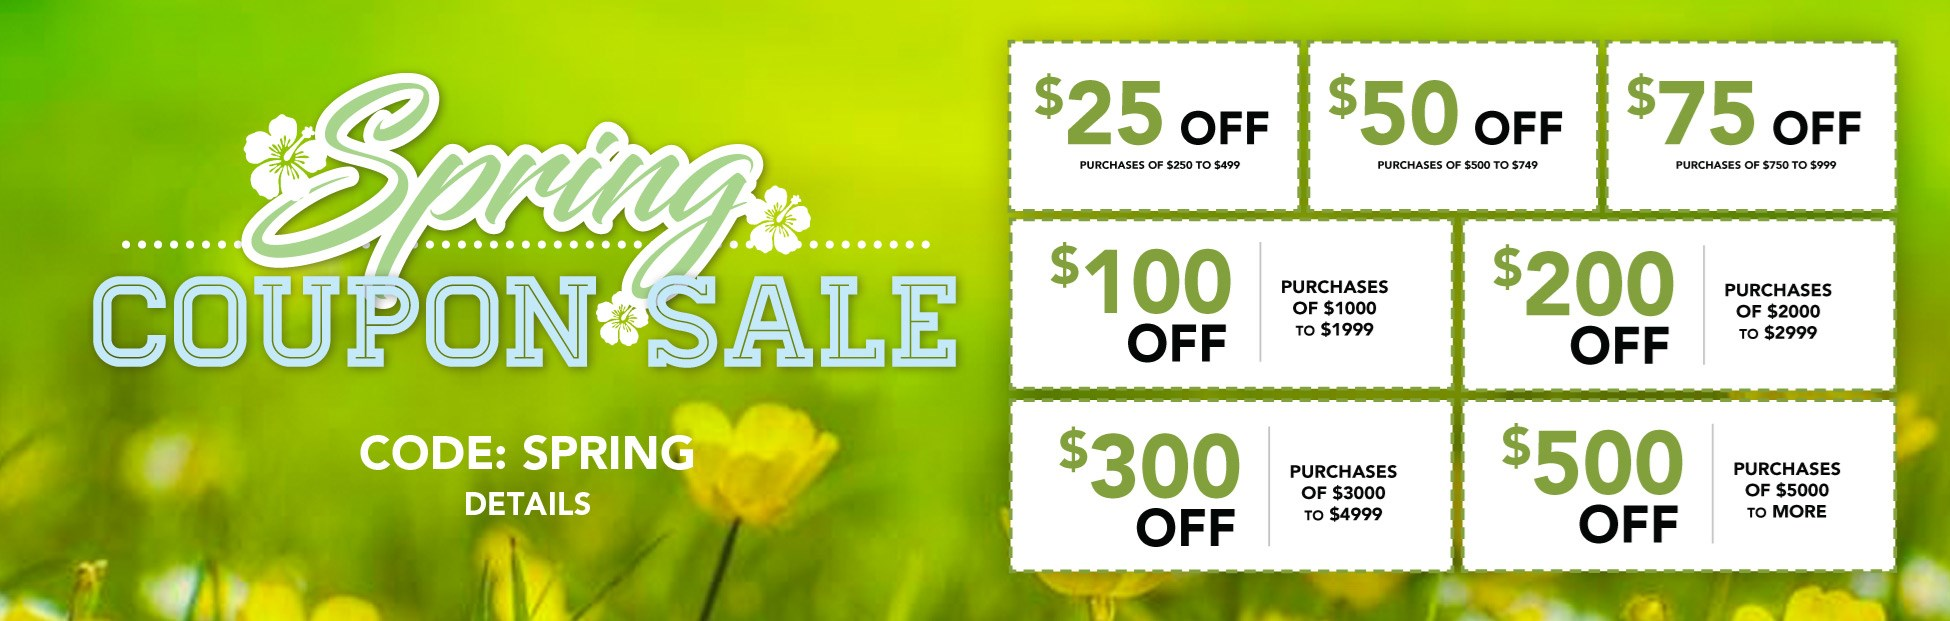 Spring Coupon Sale